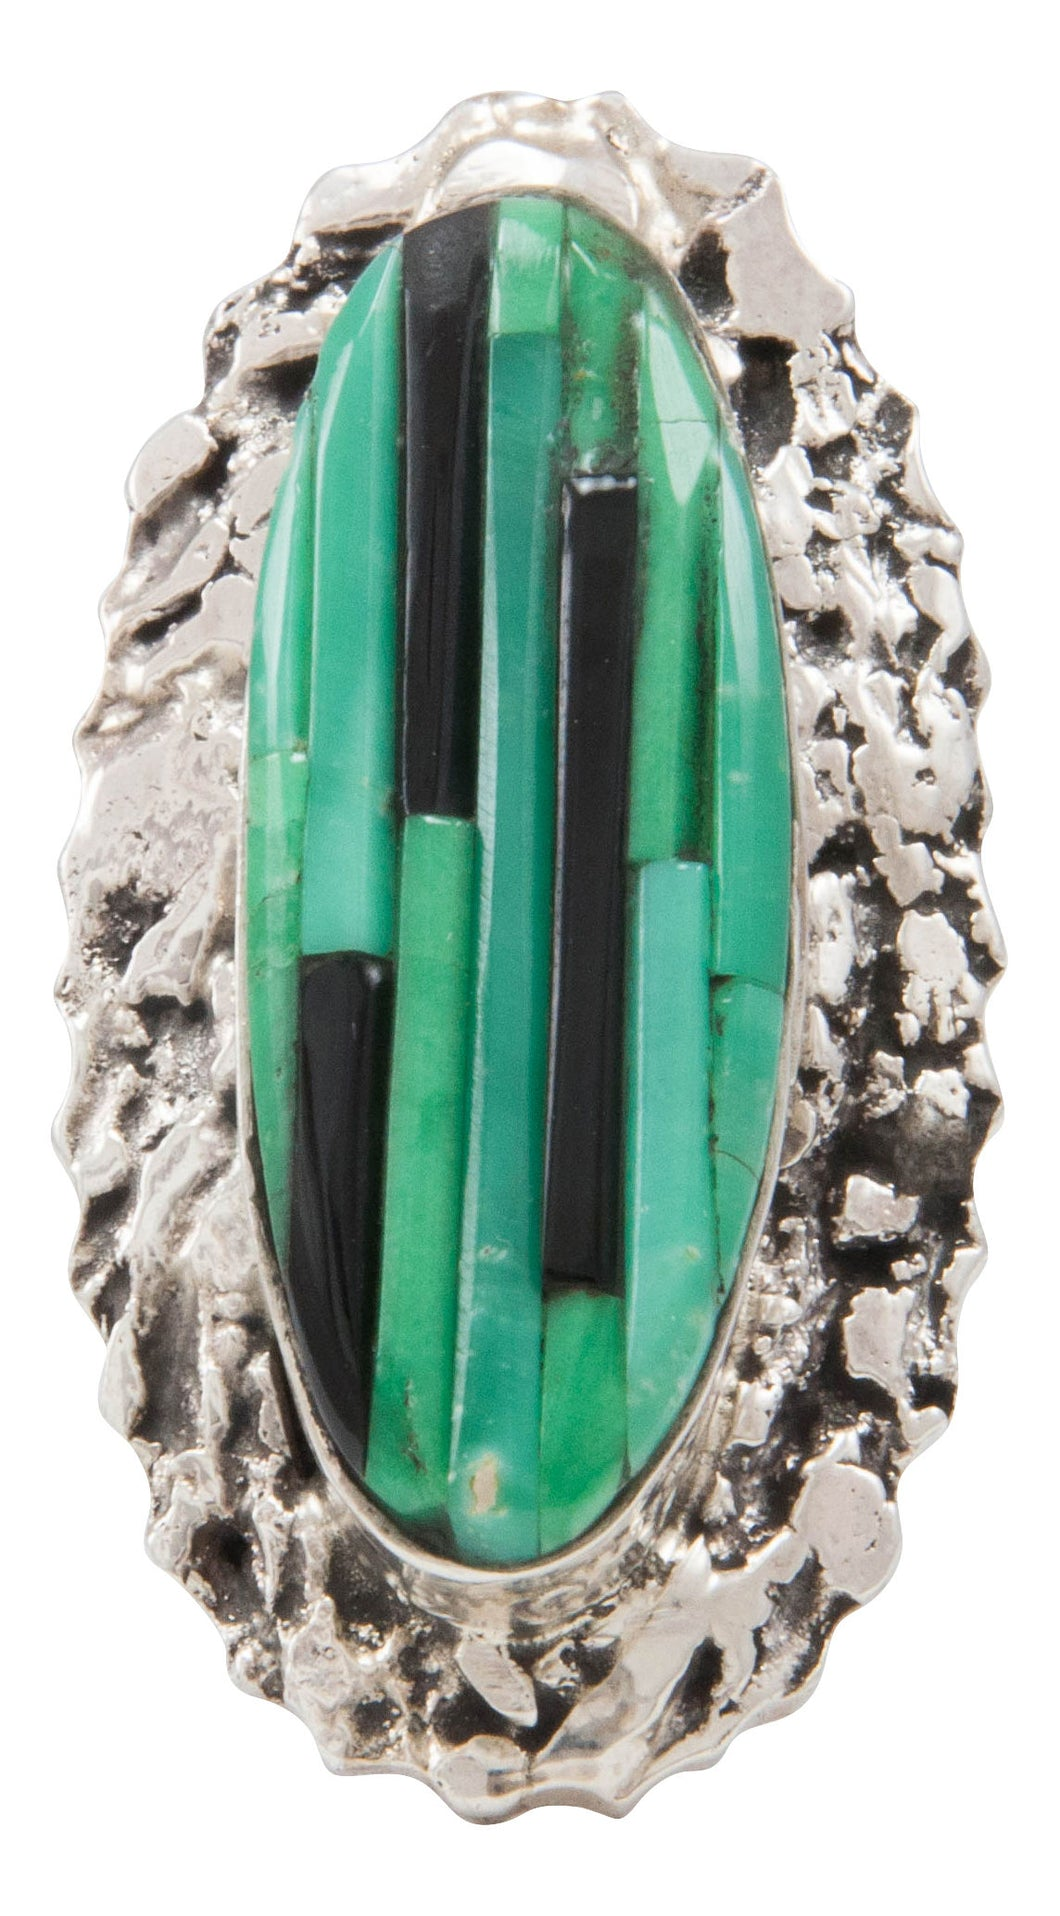 Navajo Native American Aventurine and Jet Ring Size 7 1/2 by Pete SKU231366